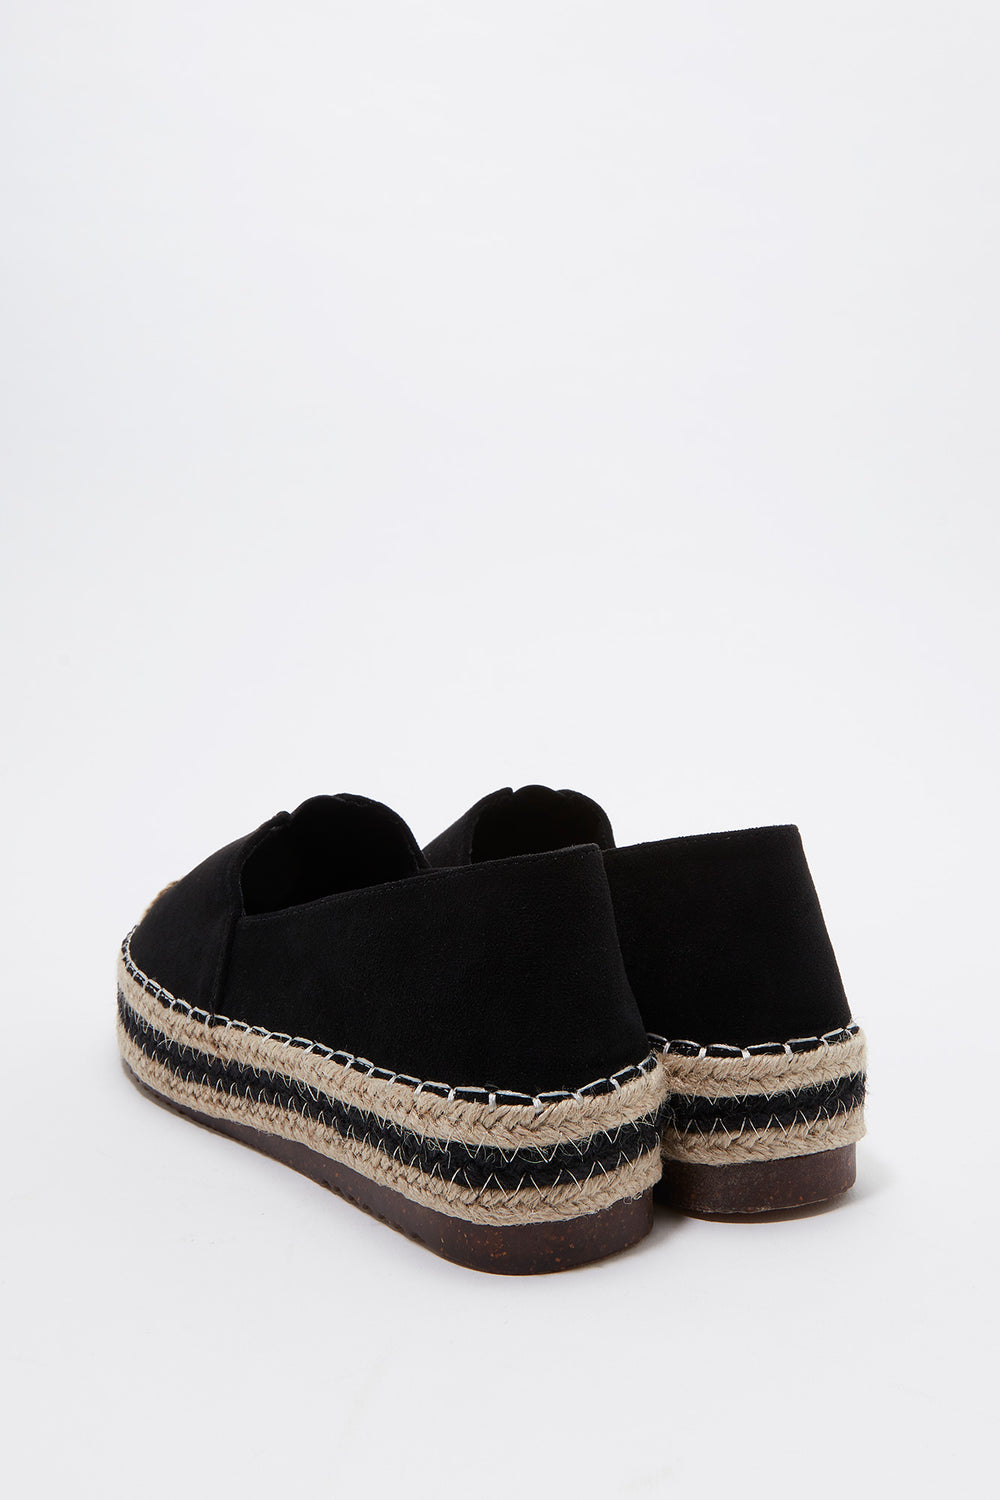 Slip On Platform Espadrille Black